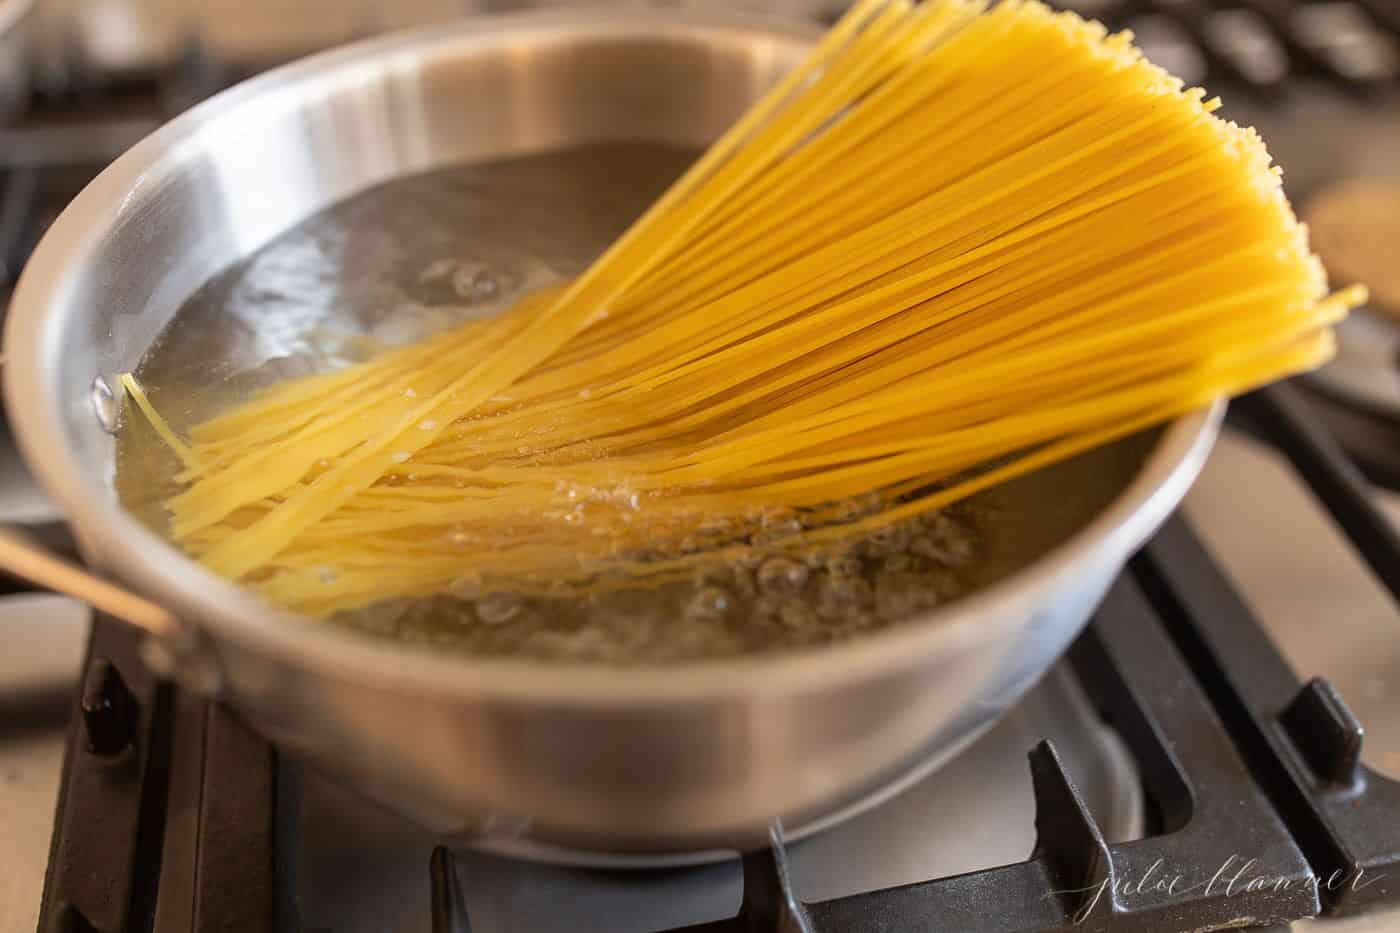 A bowl of boiling water on a stove top, spaghetti noodles halfway in the water and half out.